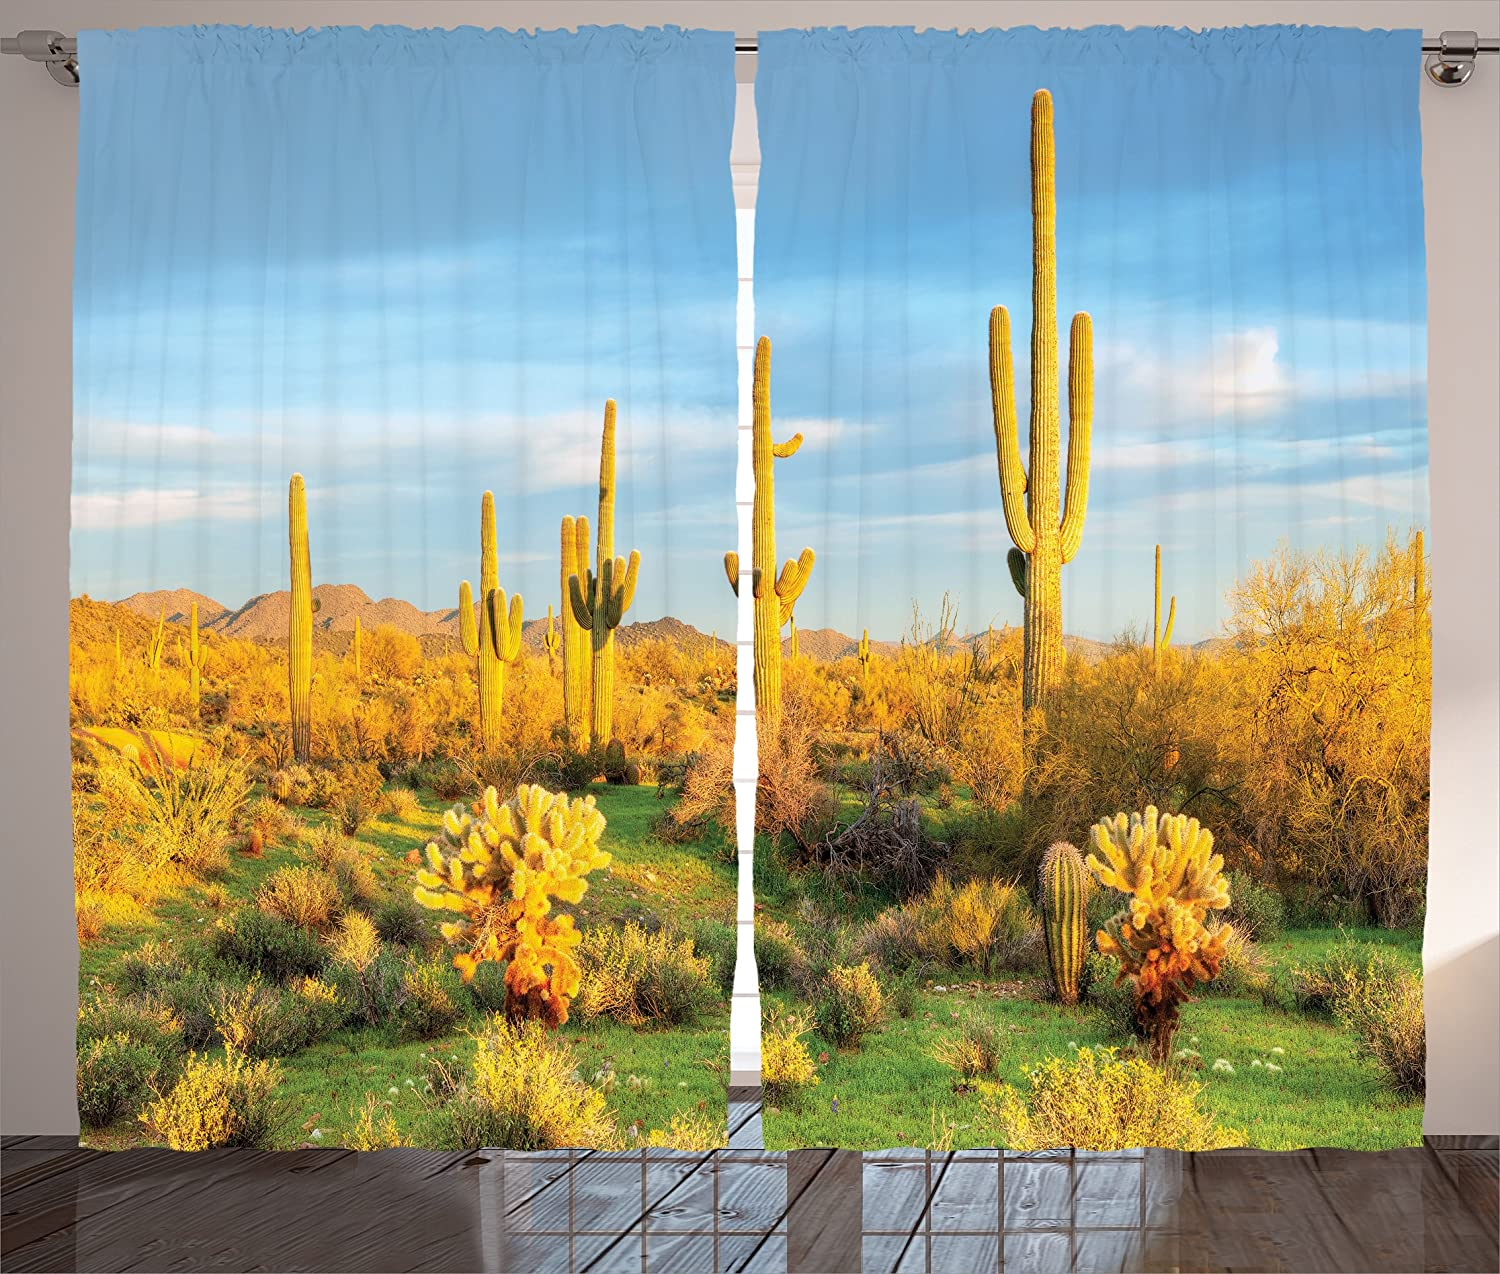 "Ambesonne Saguaro Curtains, Sun Bath in Sonoran Desert Blooming Cactus Spring Time Vegetation Scenery, Living Room Bedroom Window Drapes 2 Panel Set, 108"" X 84"", Marigold Green"